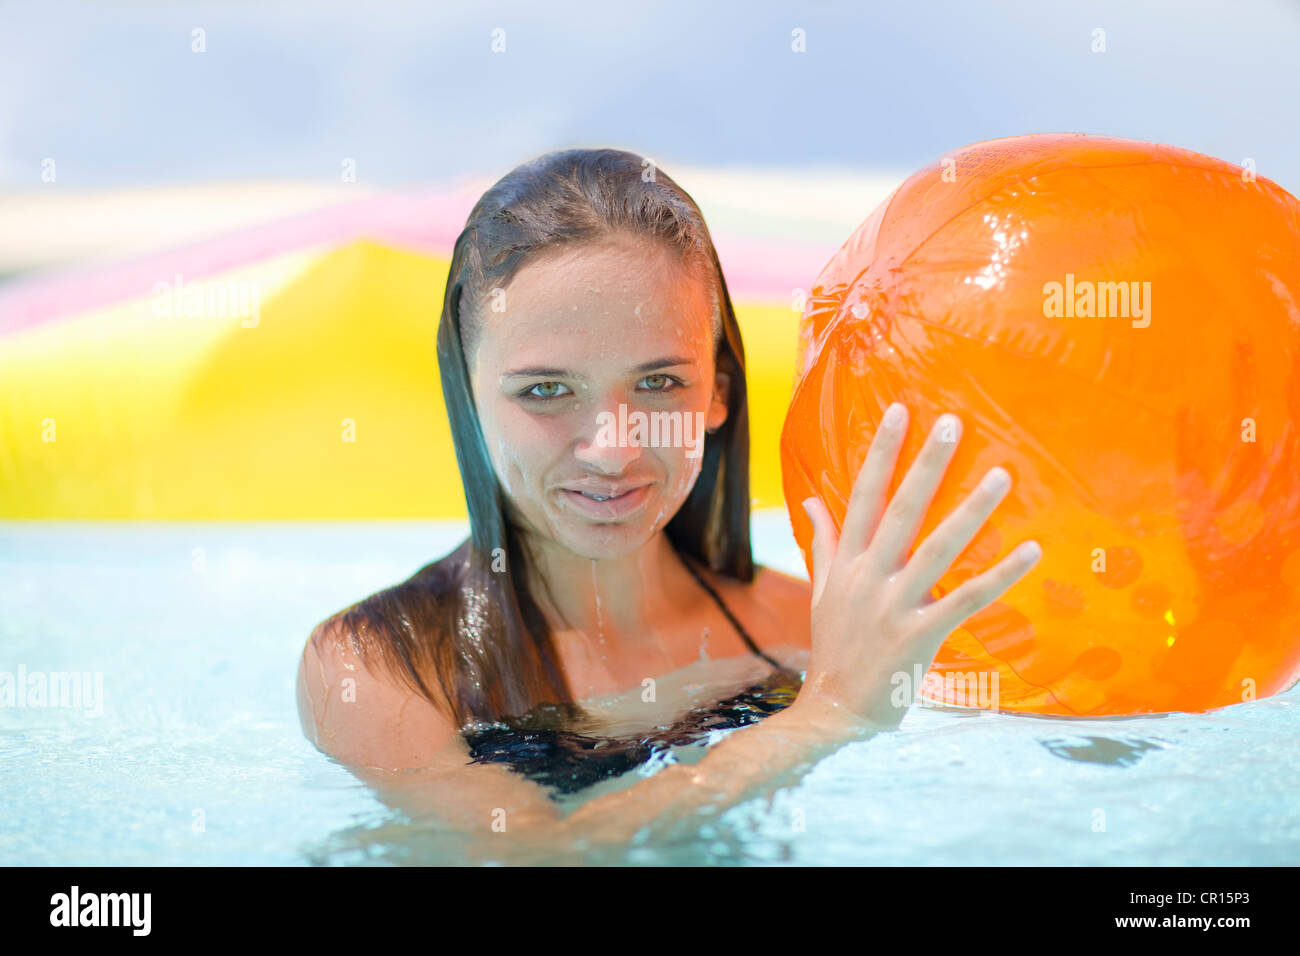 Girl holding inflatable toys in pool Stock Photo